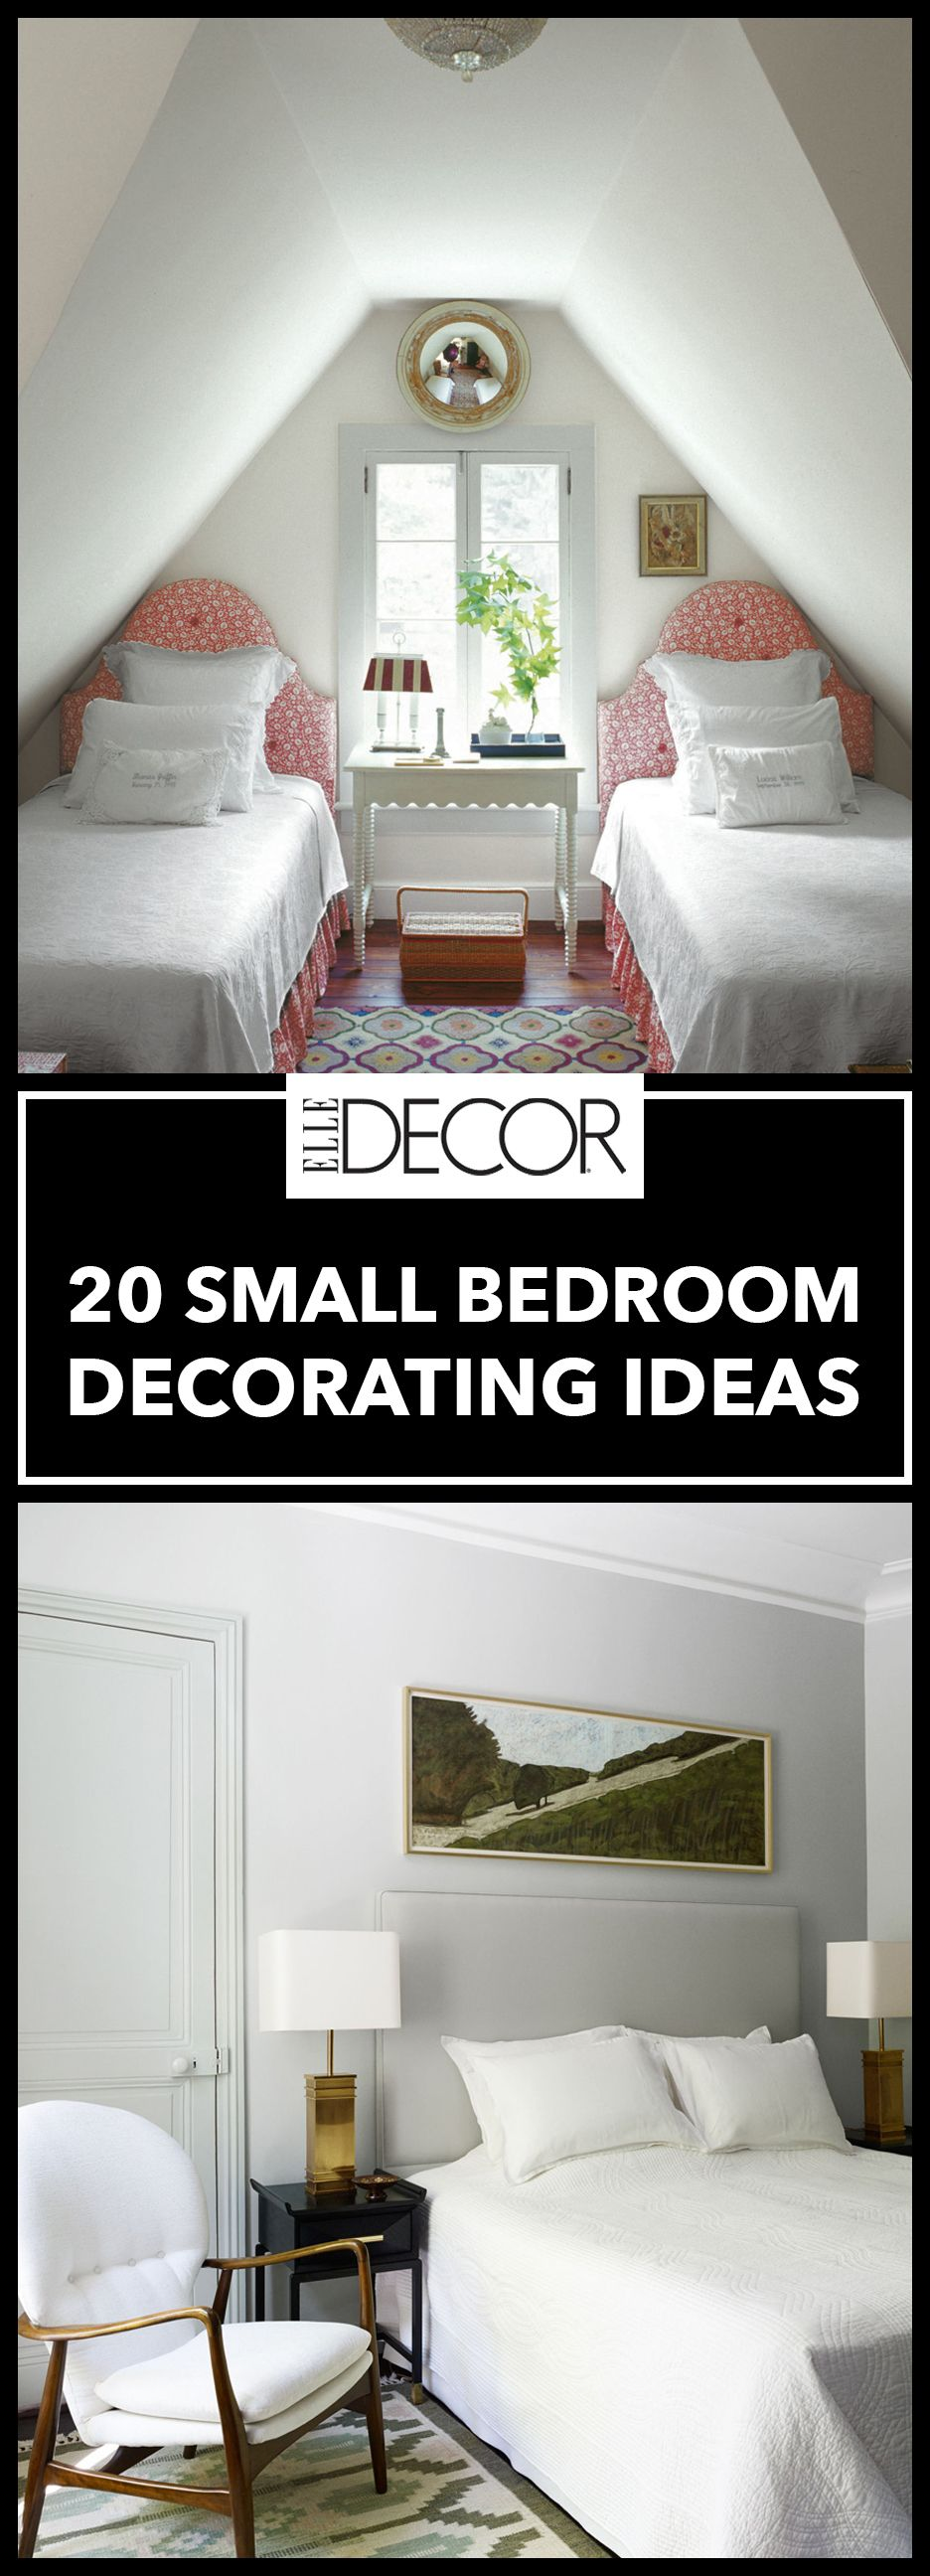 20 small bedroom design ideas decorating tips for small bedrooms - Interior Decorating Ideas Bedroom